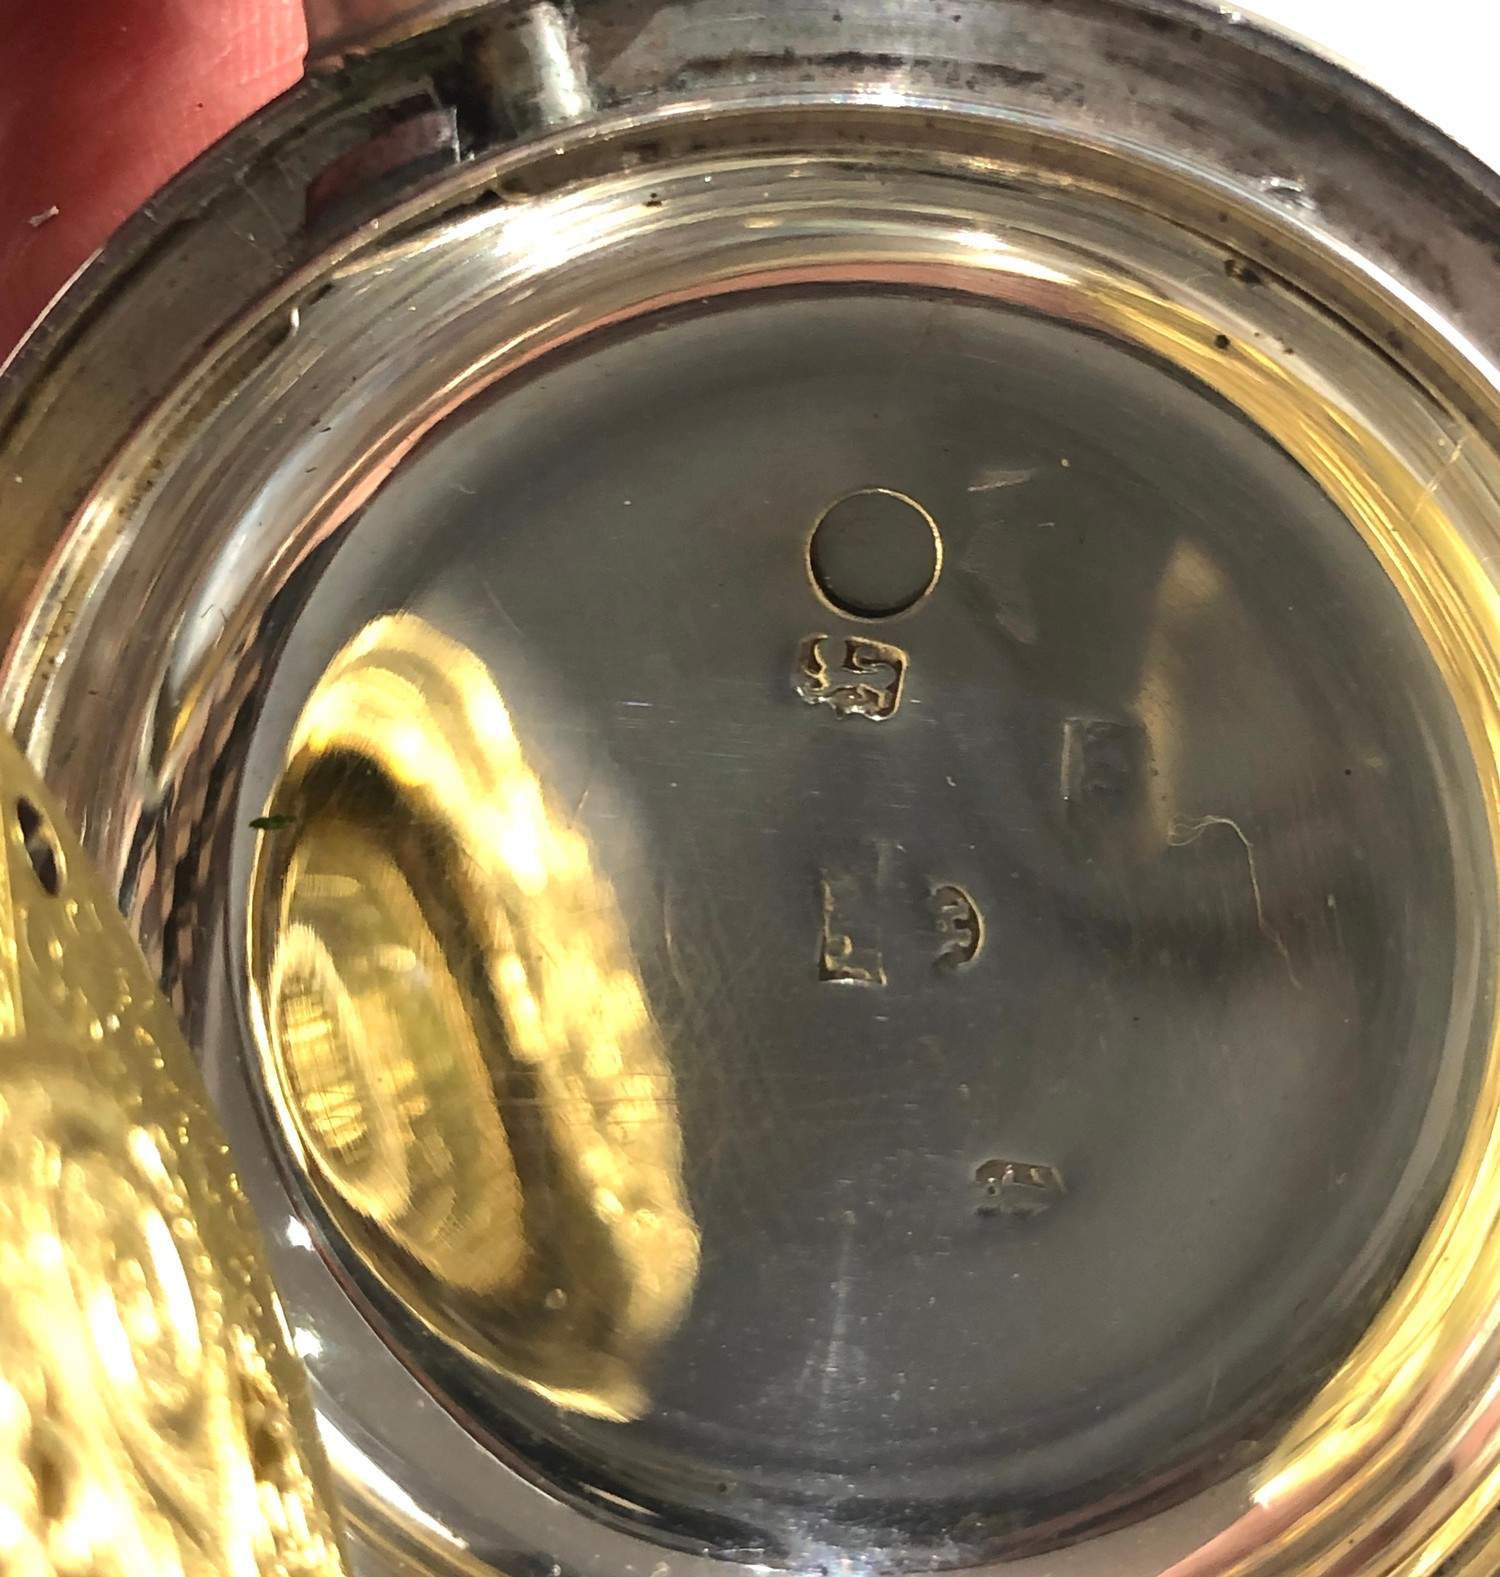 Fine antique silver full hunter case verge fusee pocket watch by Rob Turnball Greenock watch is in - Image 7 of 9